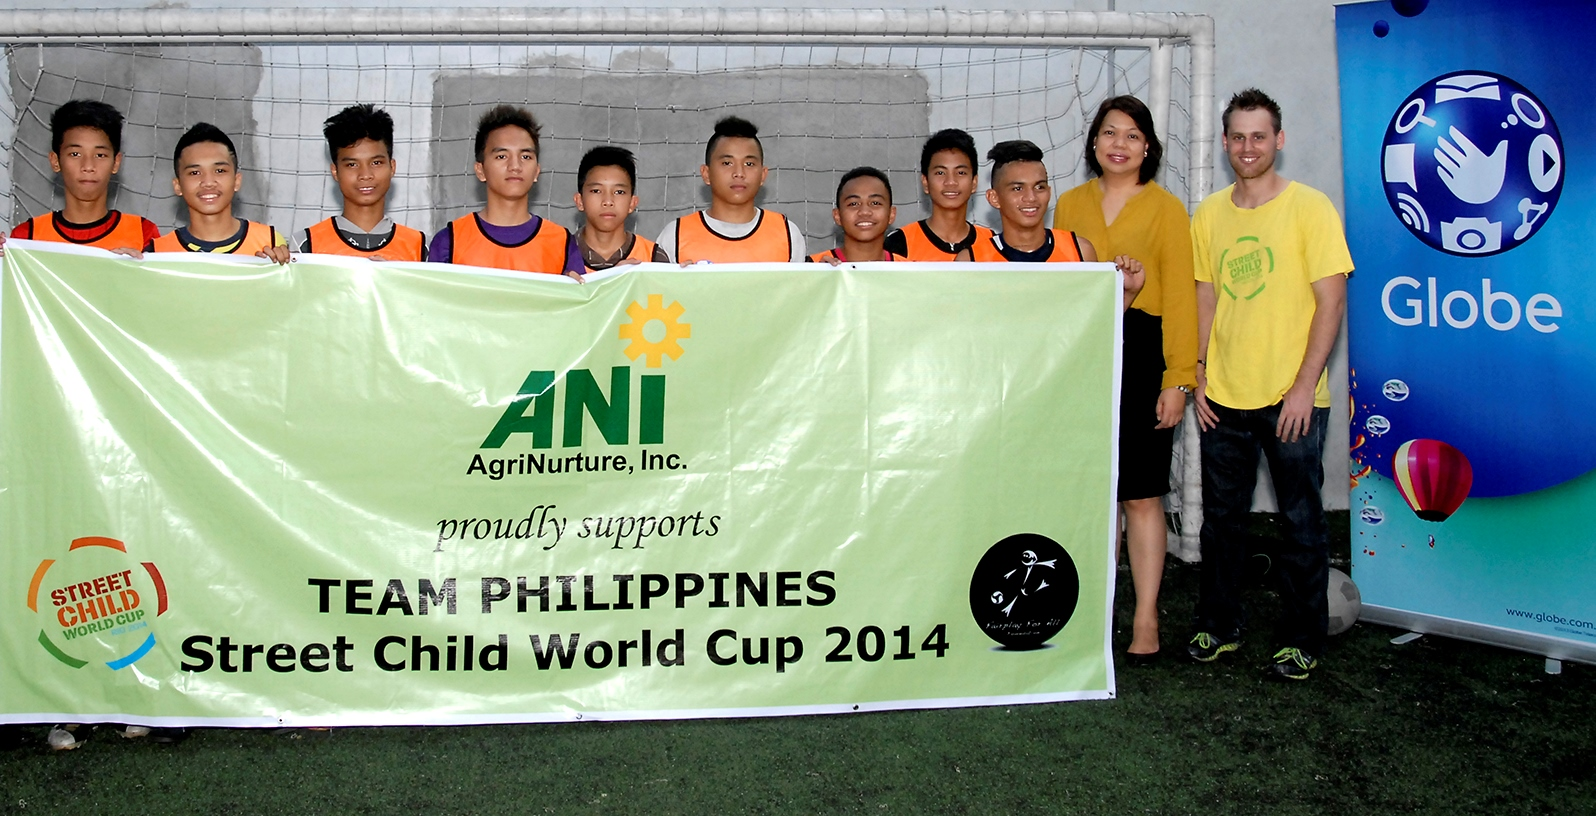 Globe Telecom supports Street Child World Cup